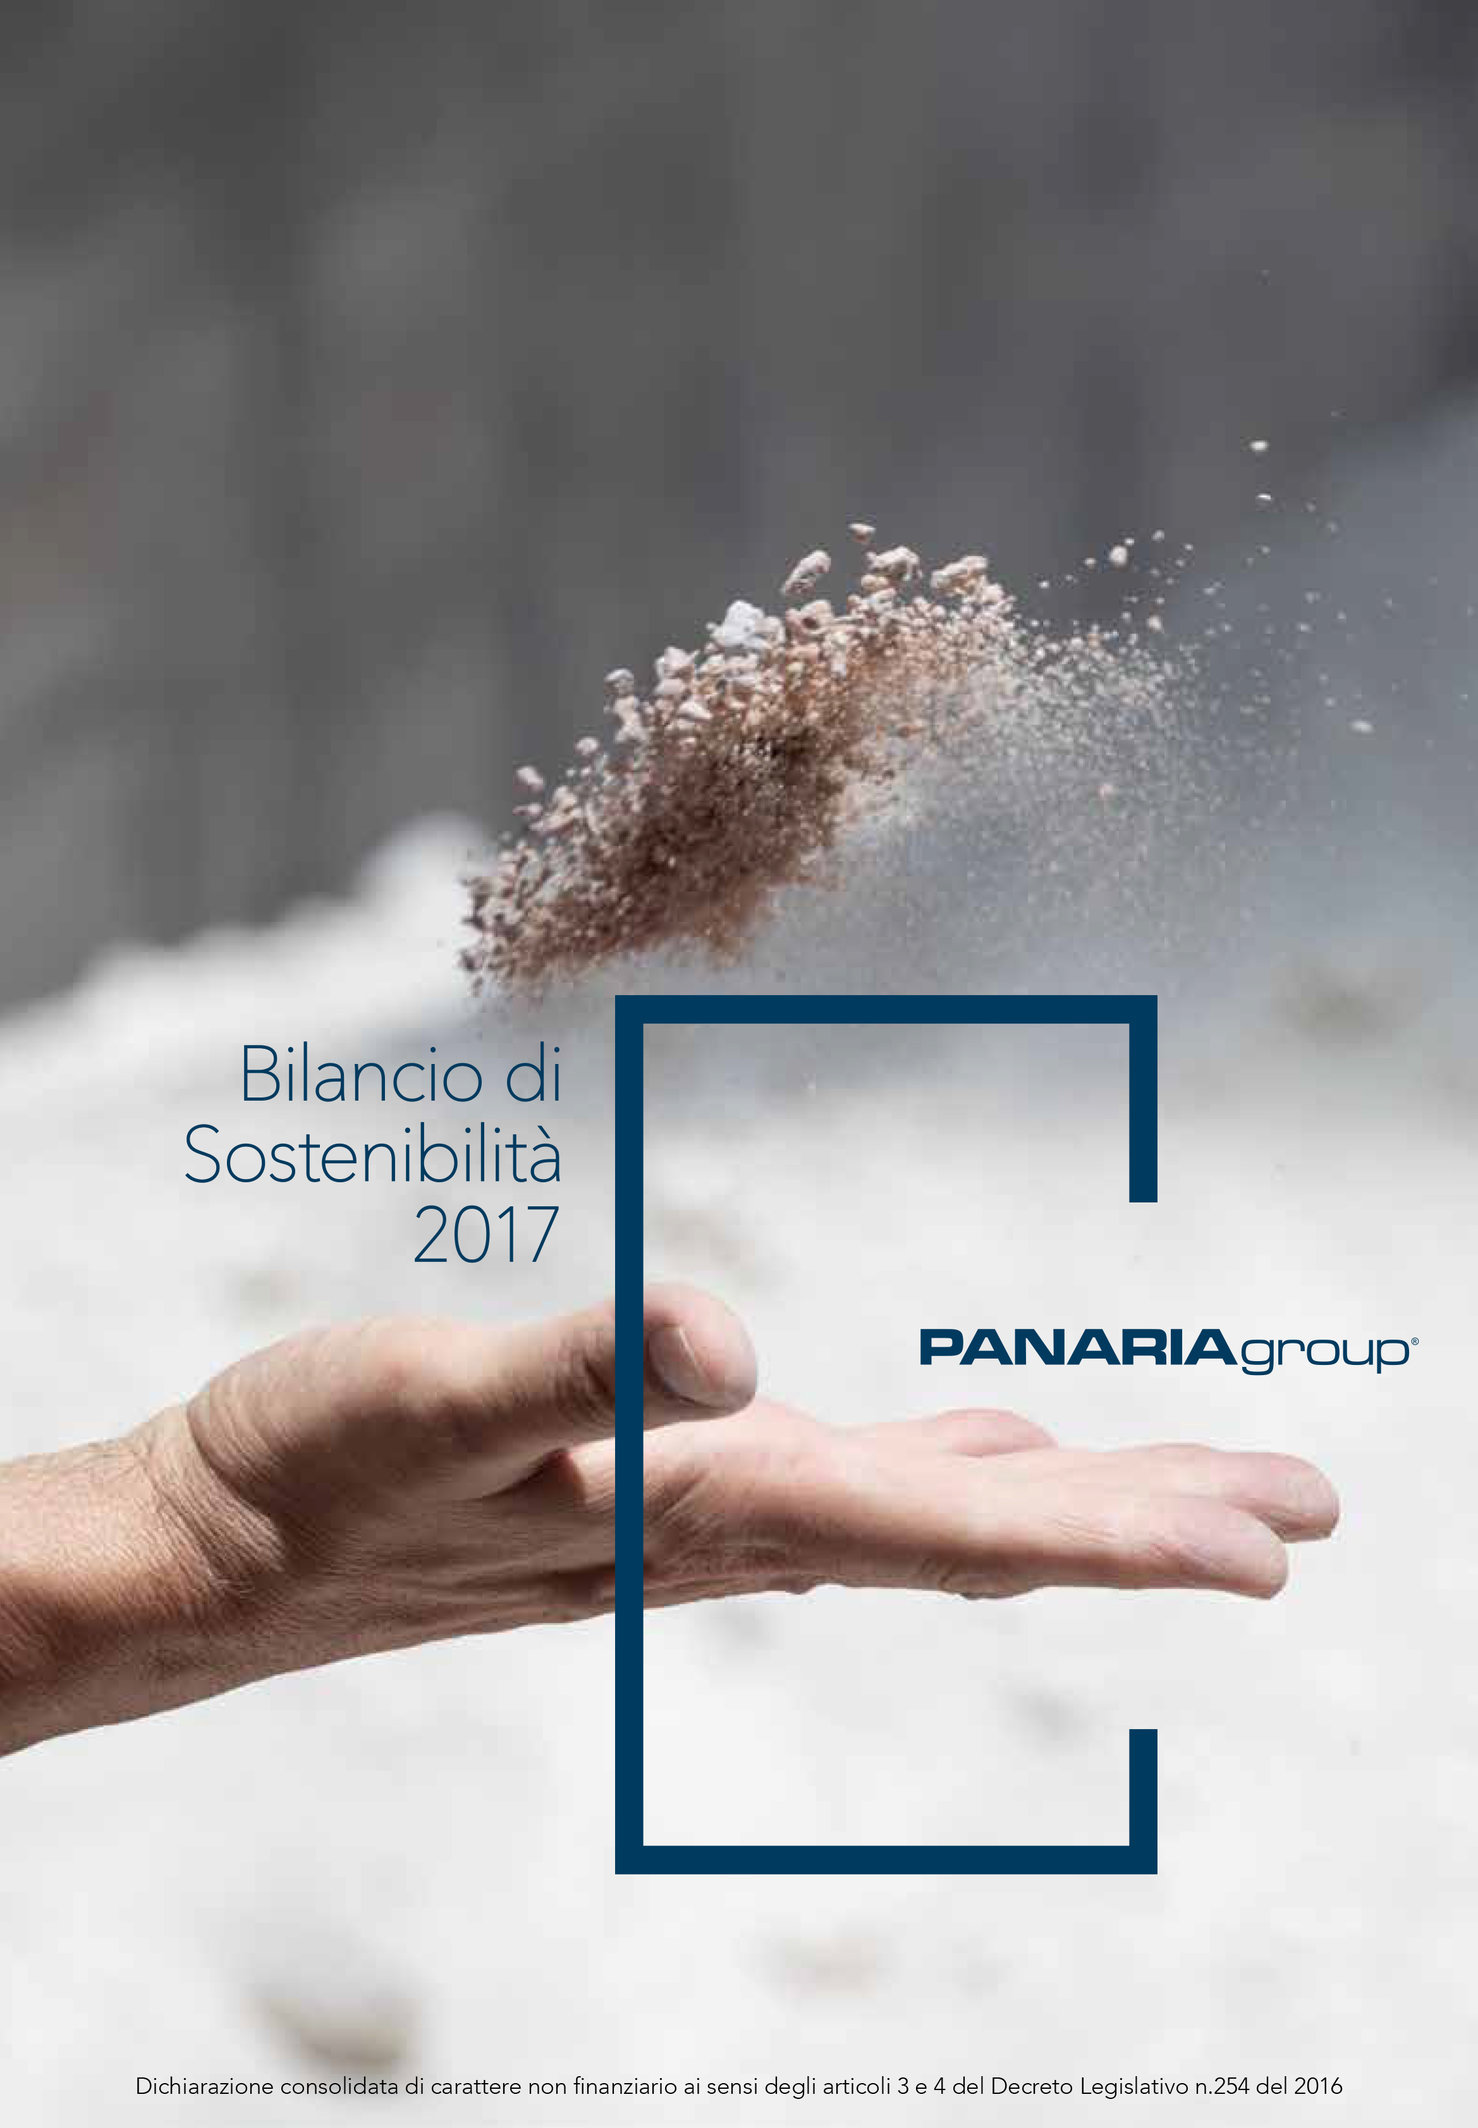 CORPORATE SUSTAINABILITY REPORT 2017 PANARIAGROUP